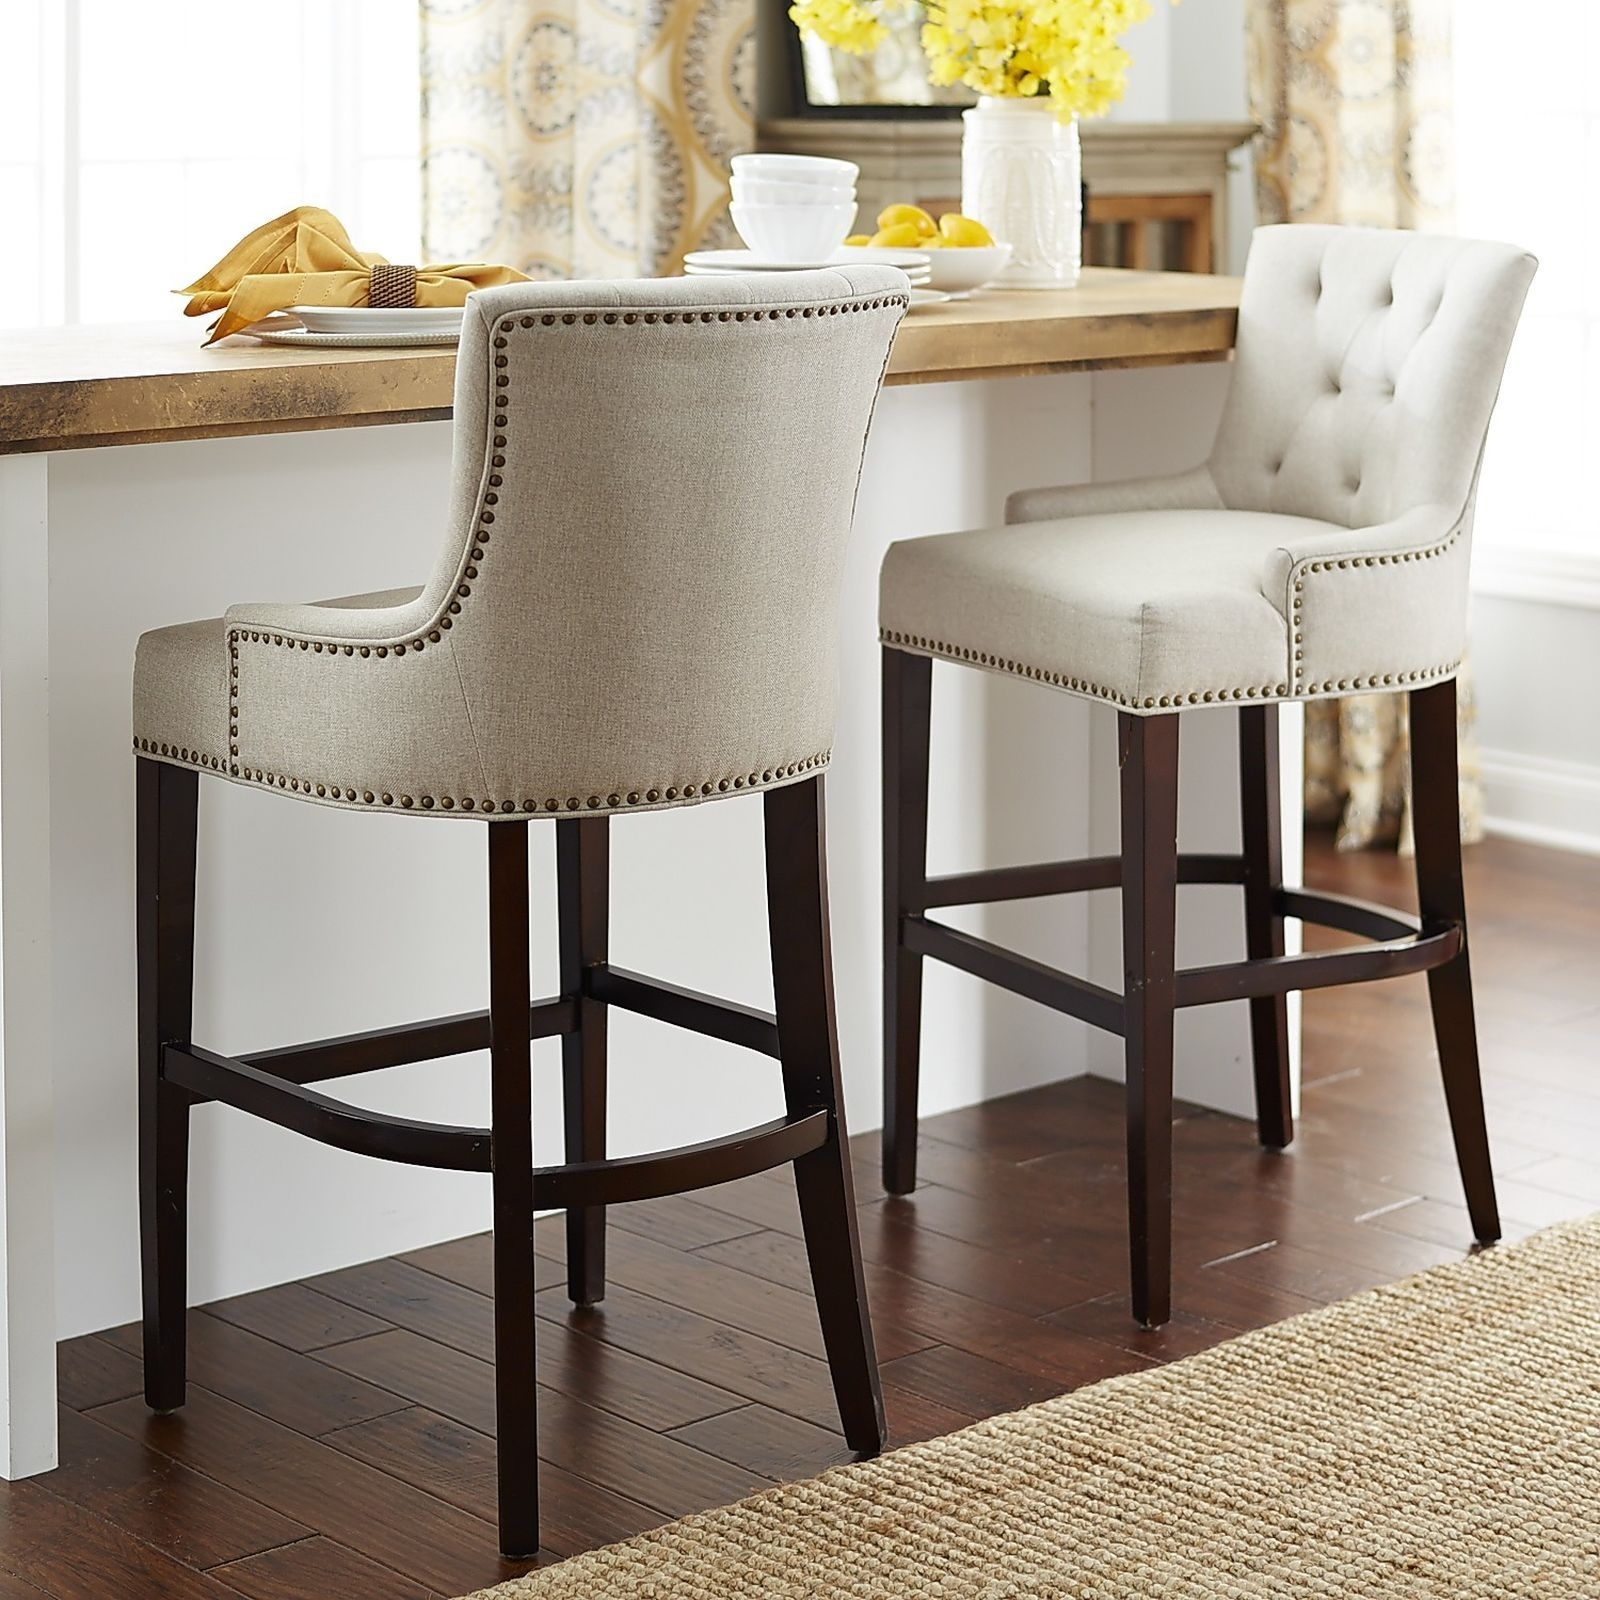 Ava Flax Counter & Bar Stool In 2018 | Downstairs Living Room Pertaining To Most Recently Released Valencia 4 Piece Counter Sets With Bench & Counterstool (View 11 of 20)